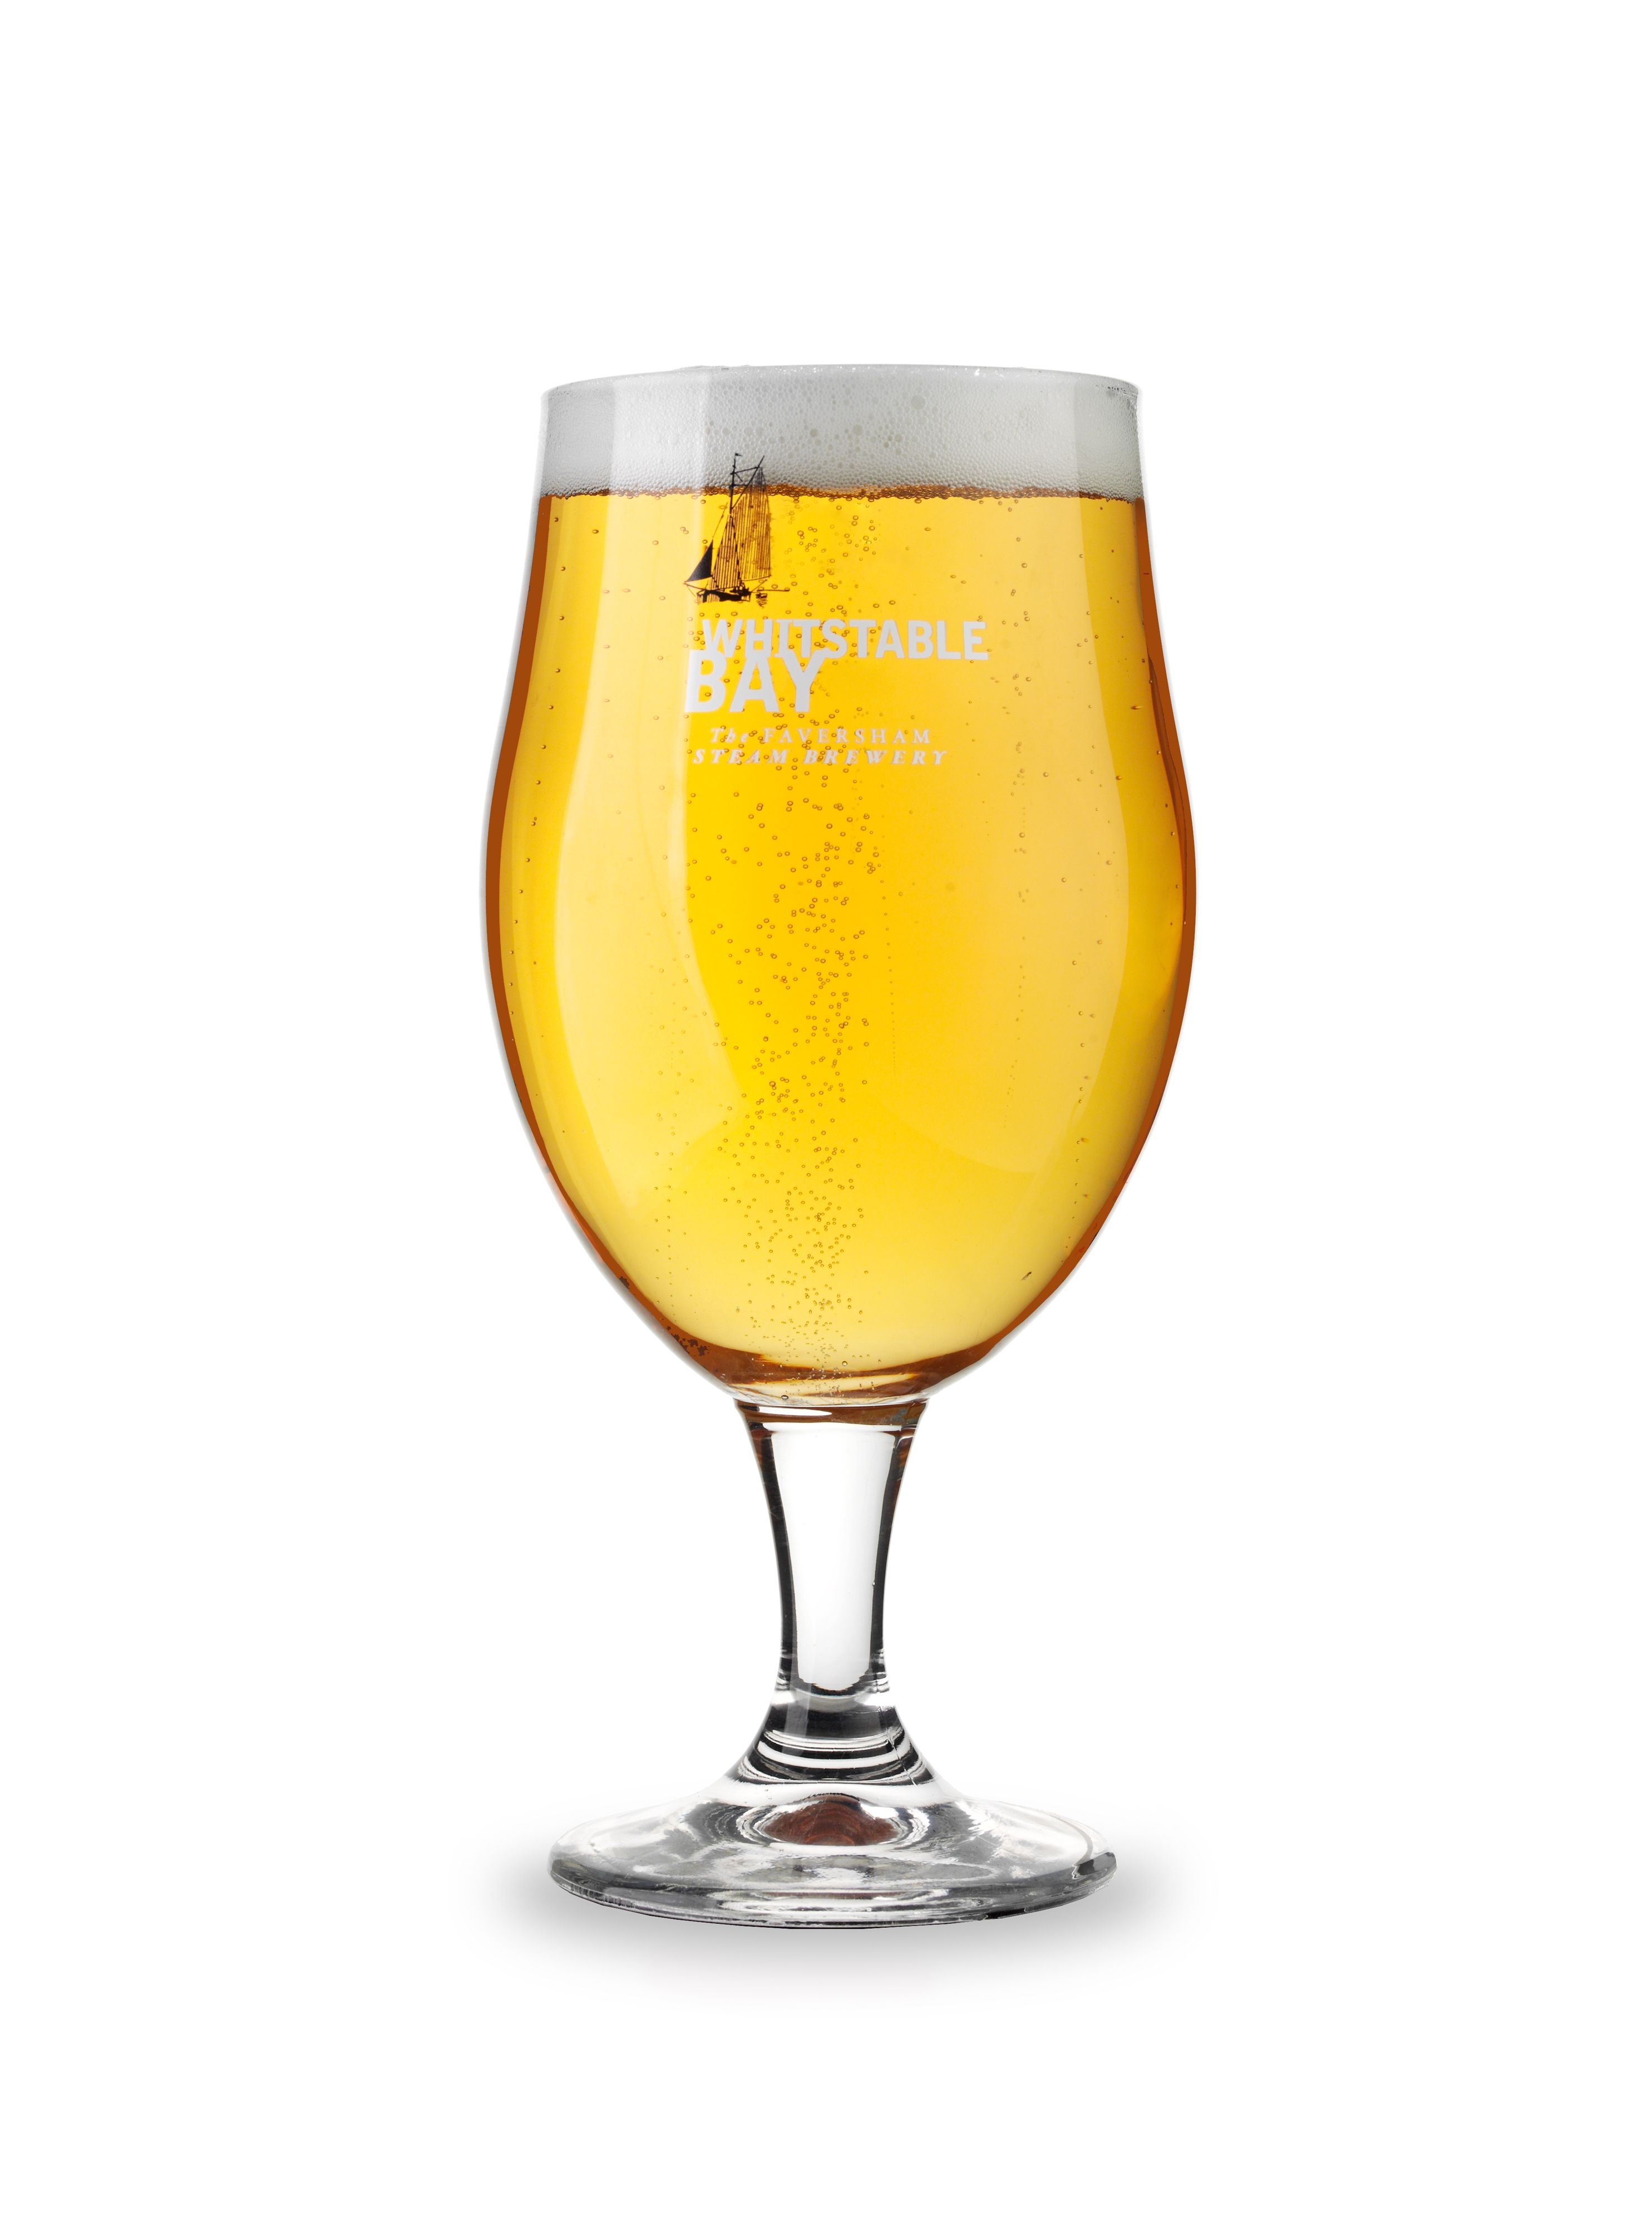 Stem glass whitstable bay premium lager whitstable bay premium stem glass whitstable bay premium lager sciox Image collections